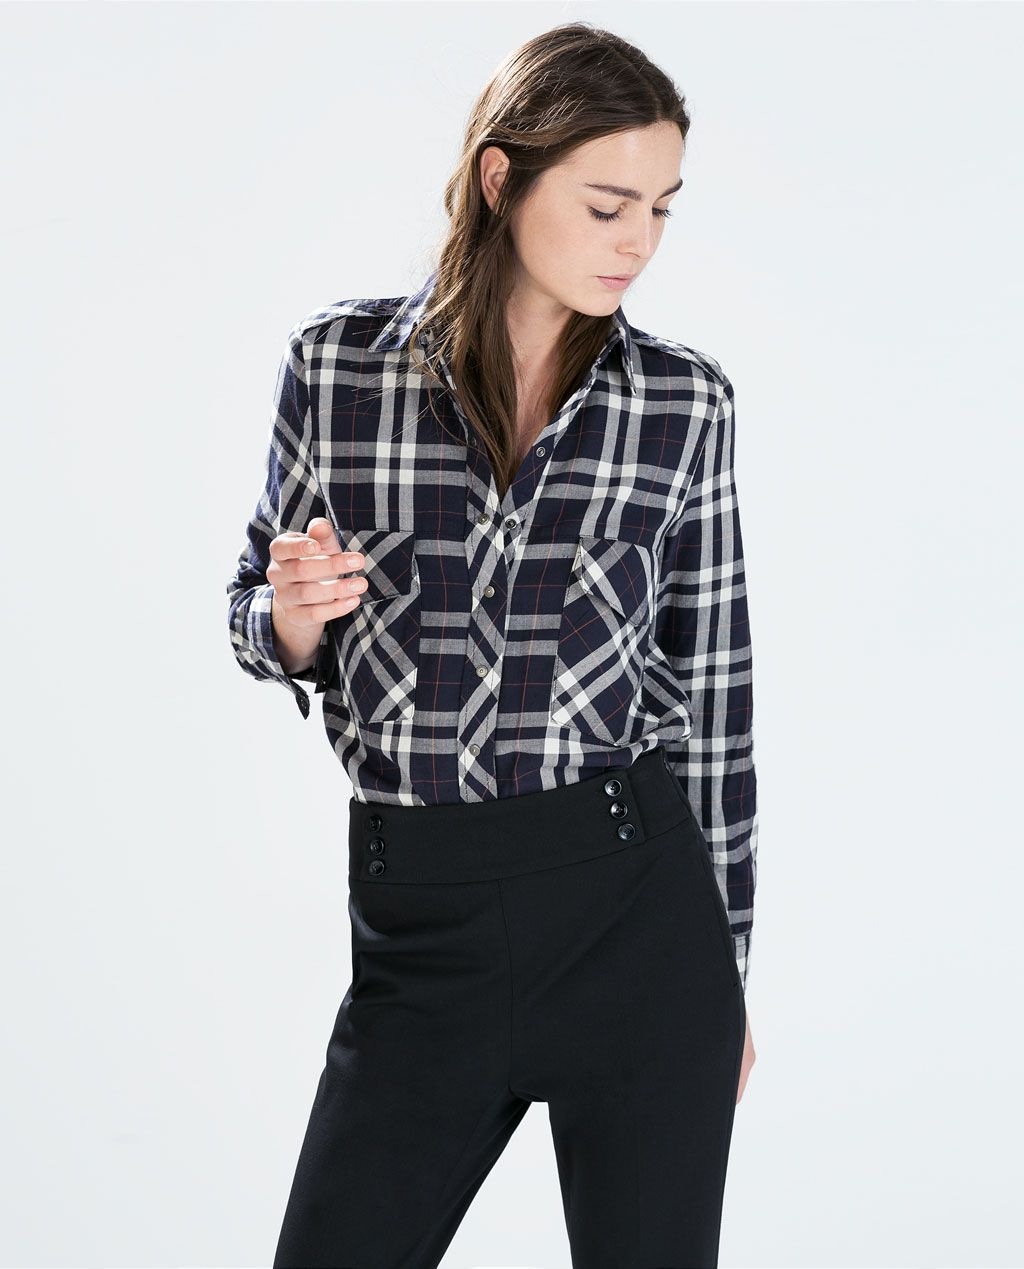 Uniqlo flannel jacket  ZARA  WOMAN  CHECKED SHIRT  CHECK IN  Pinterest  Checked shirts